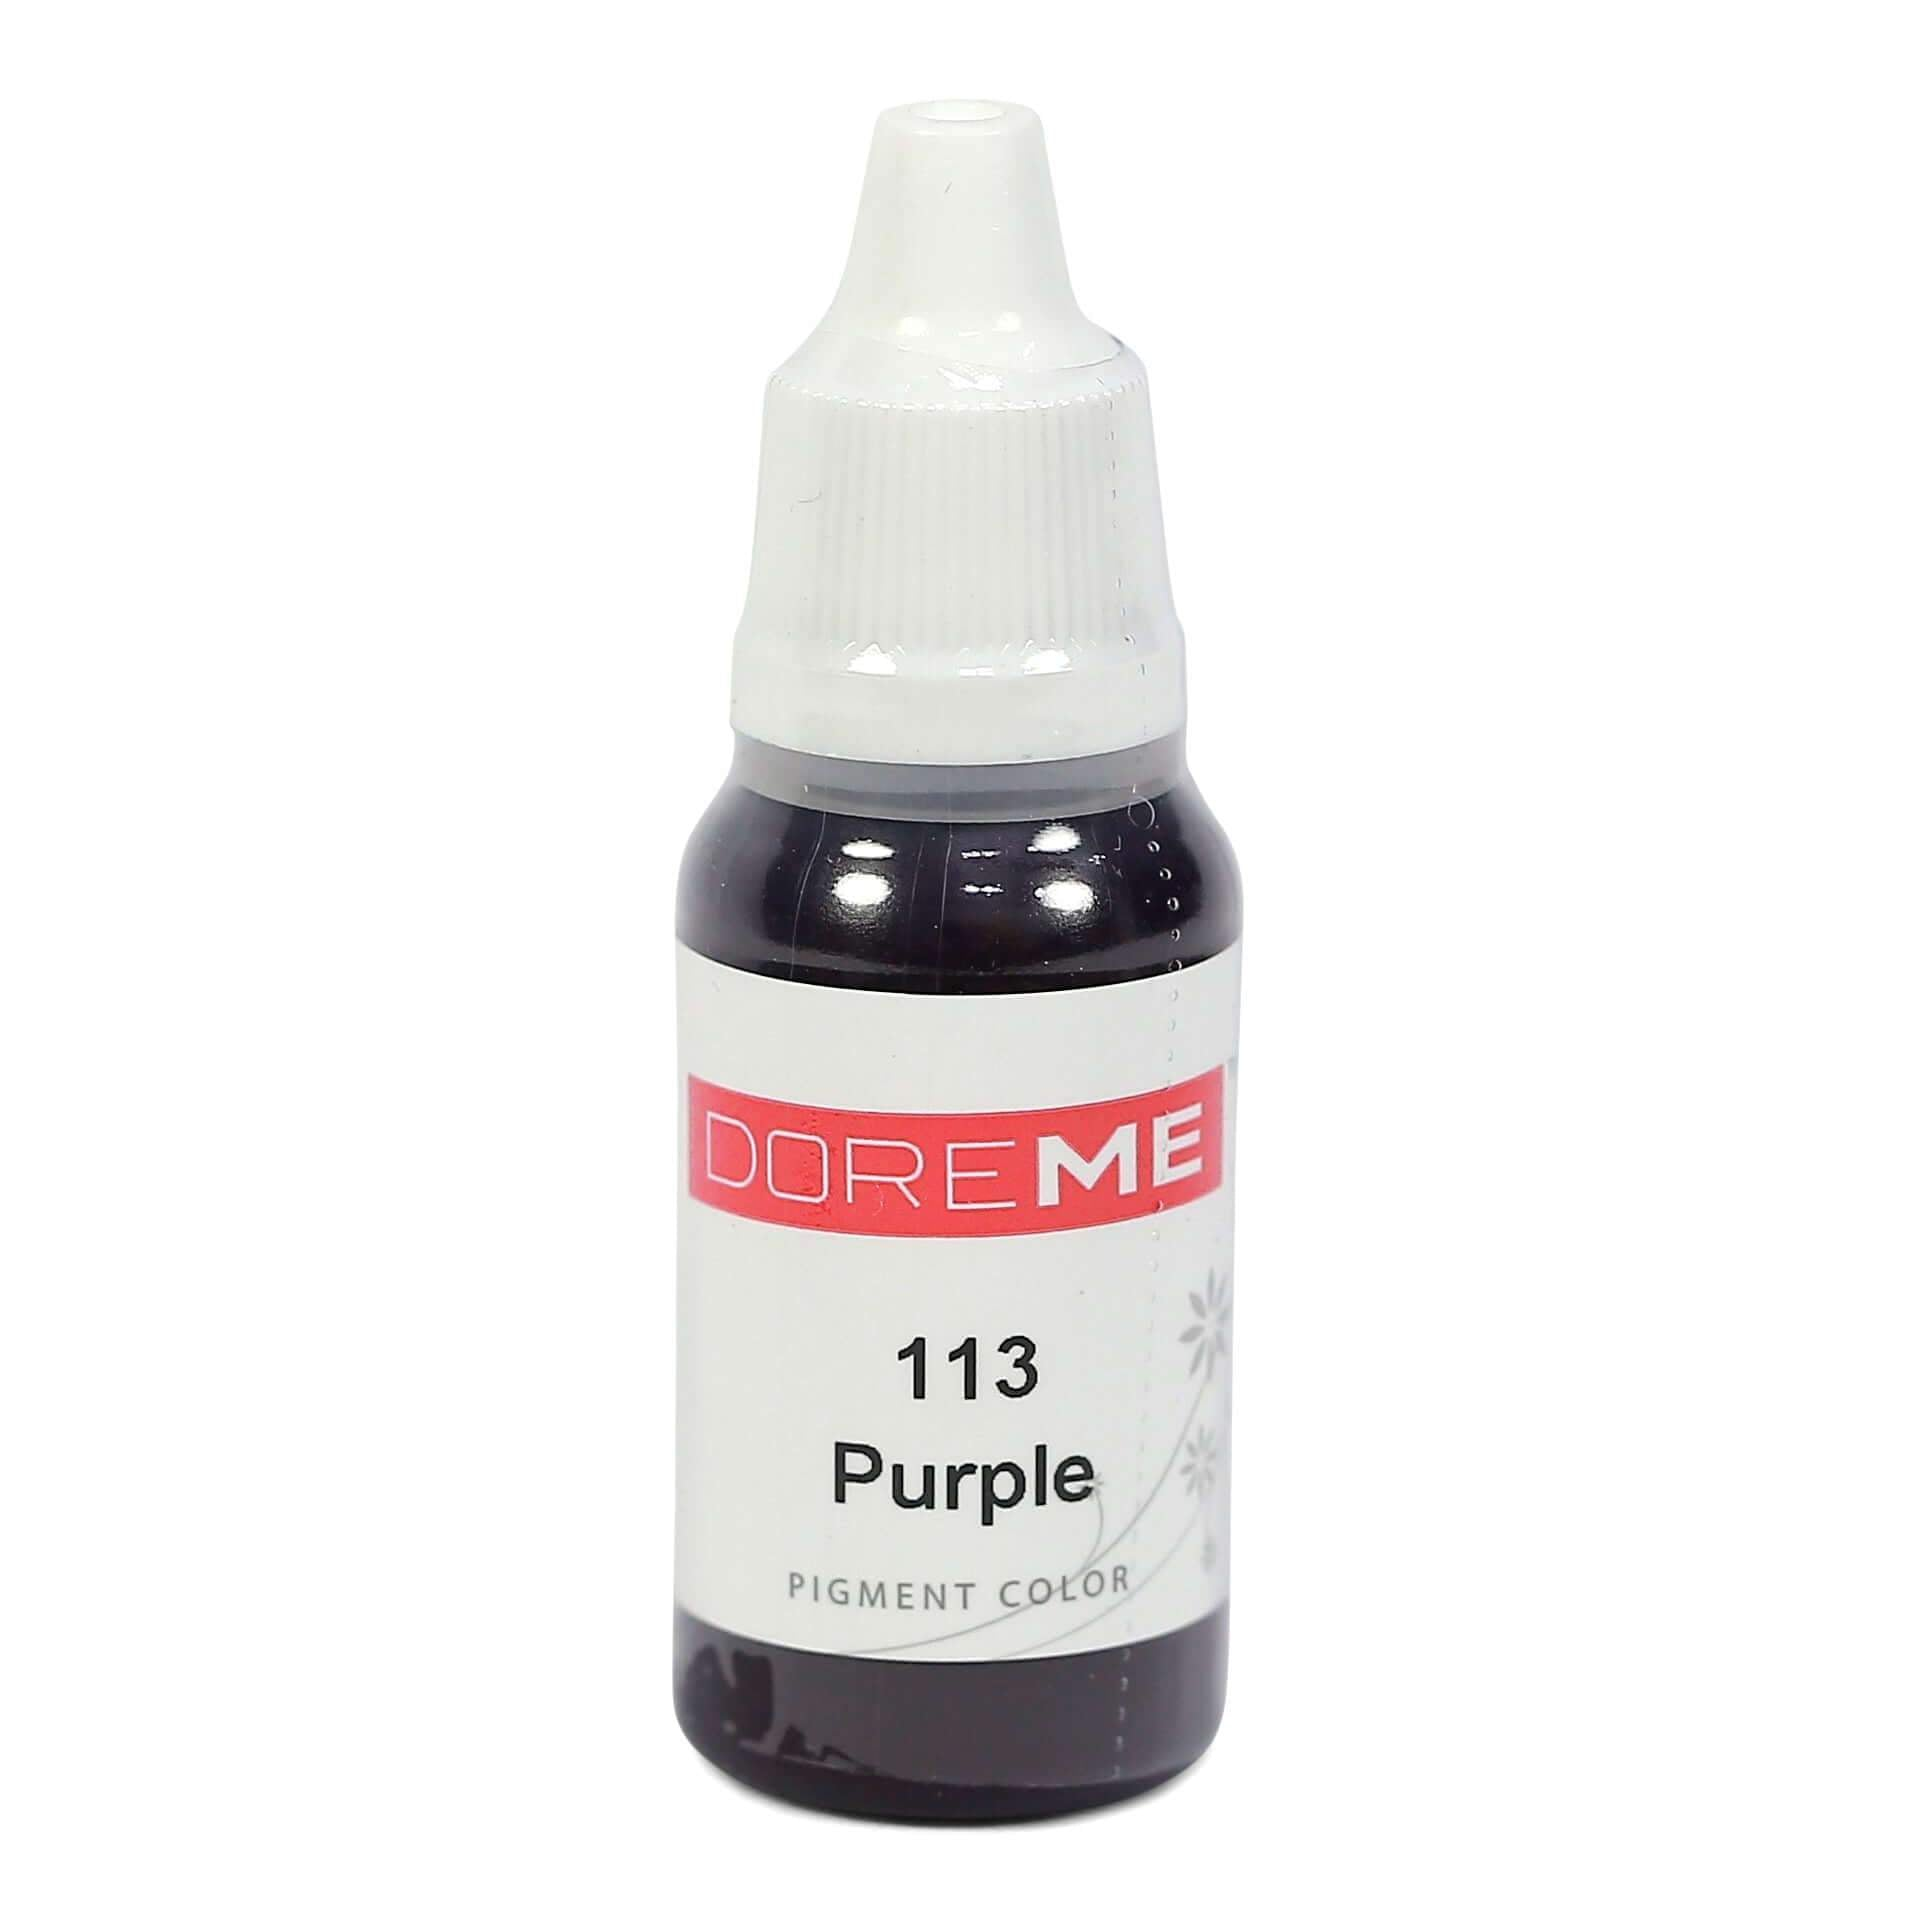 Permanent Makeup pigments Doreme Micropigmentation Eyebrow, Eyeliner, Lip Colours 113 Purple (c) - Beautiful Ink UK trade and wholesale supplier